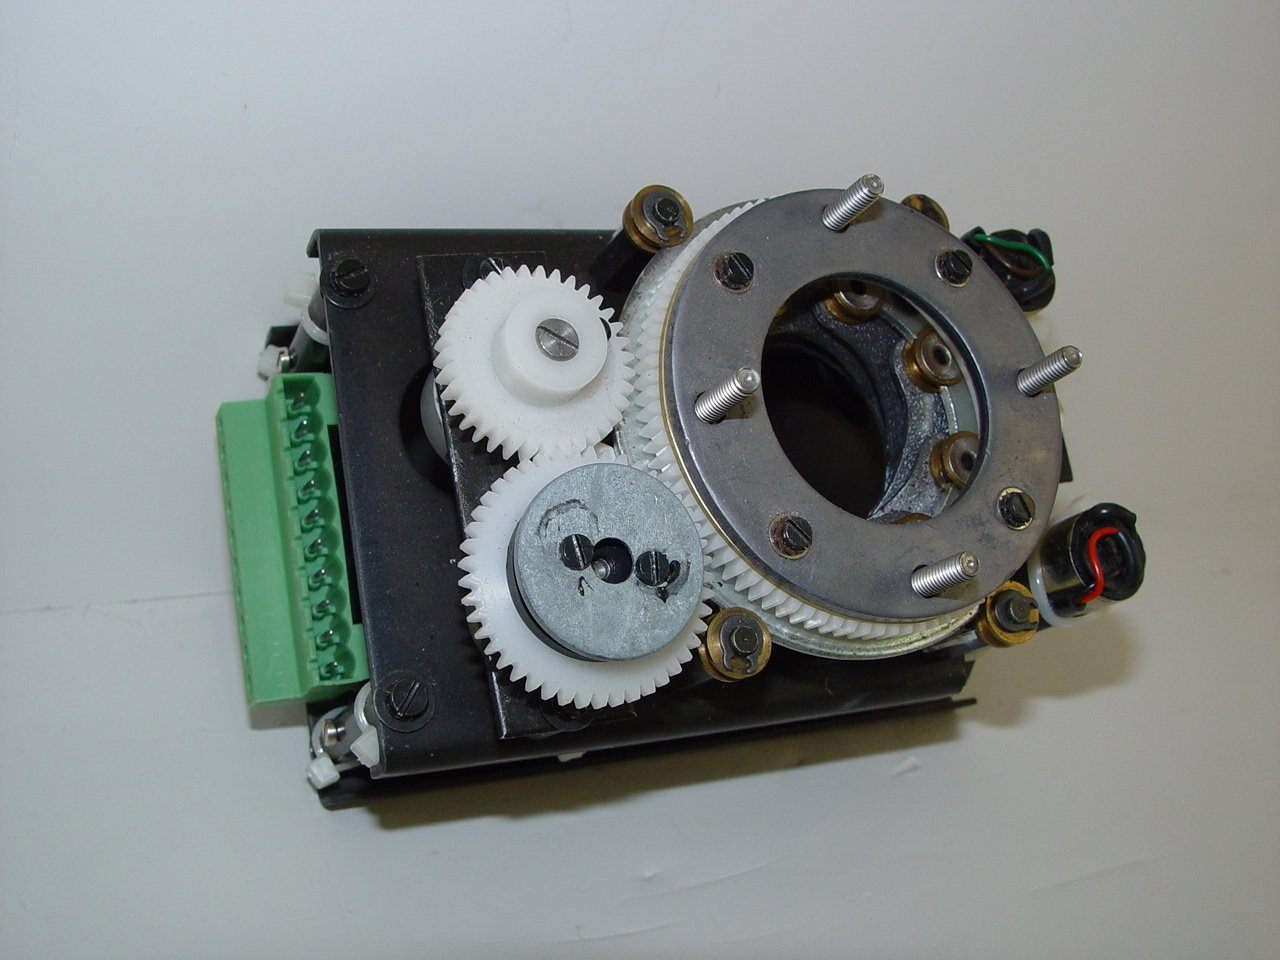 Components - OEC-9600 COLLIMATOR C-ARM (00-900958-02)